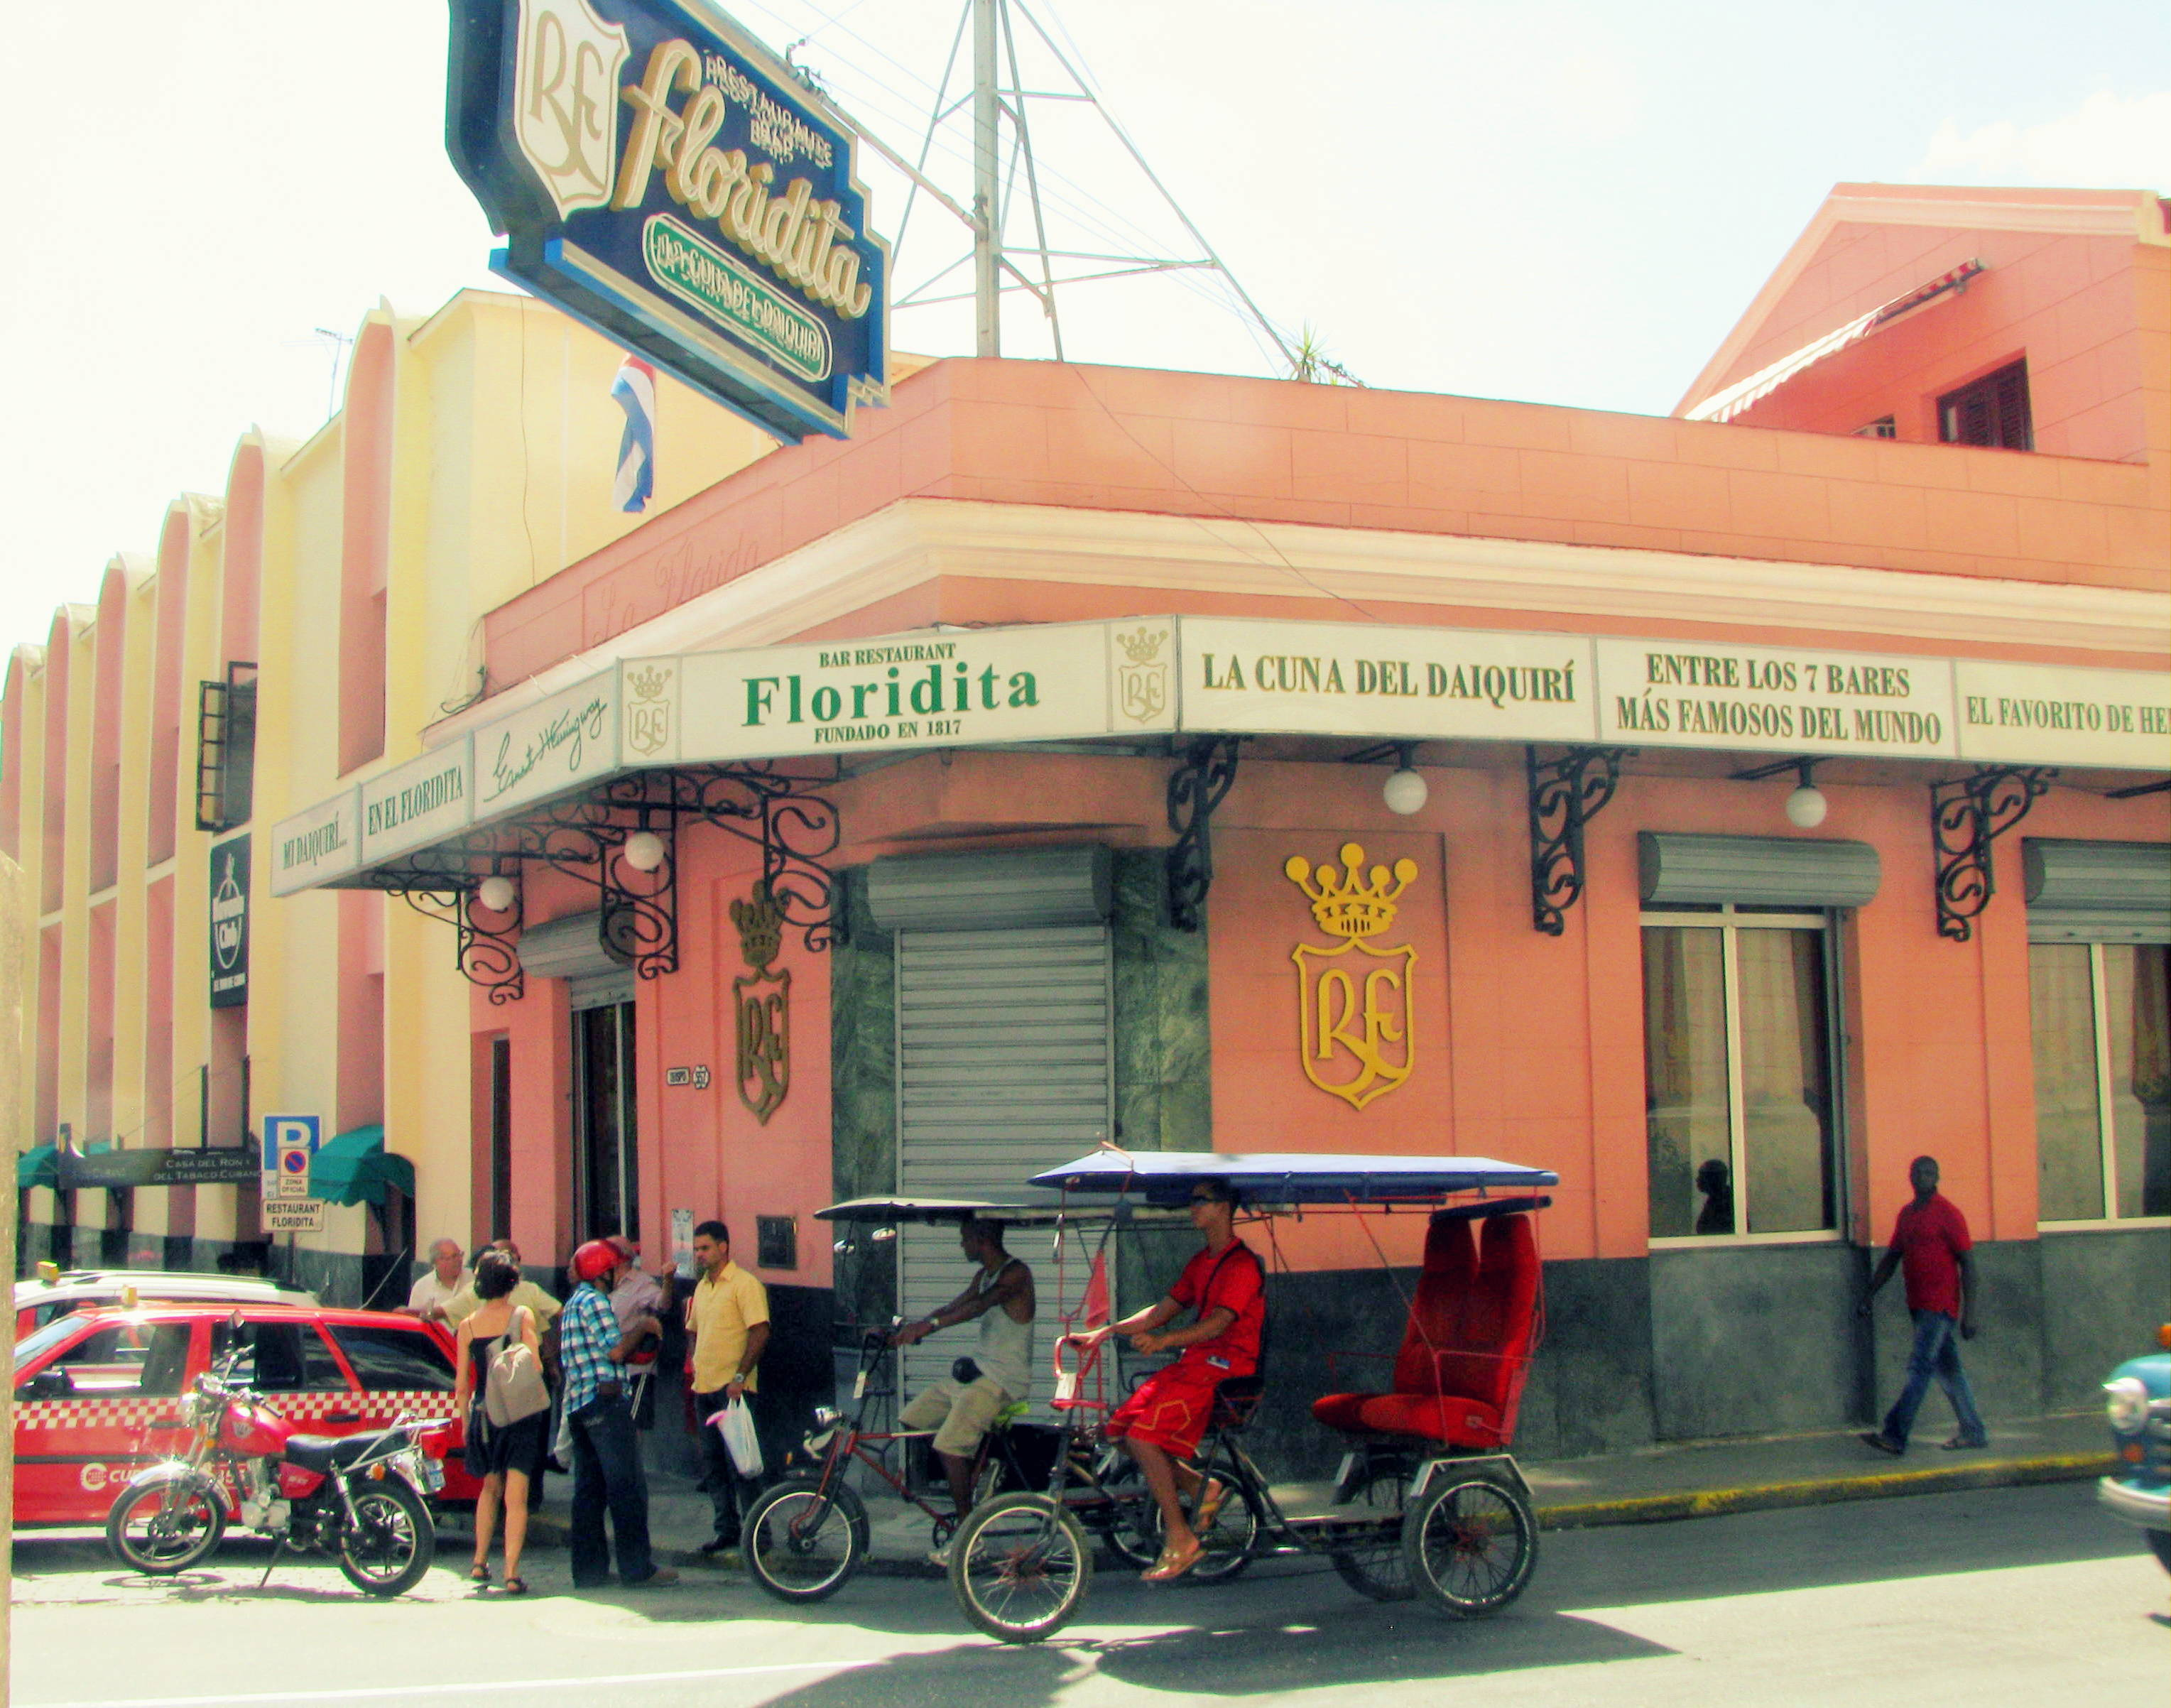 Floridita, one of the favourite hangouts of Ernest Hemingway in Havana.